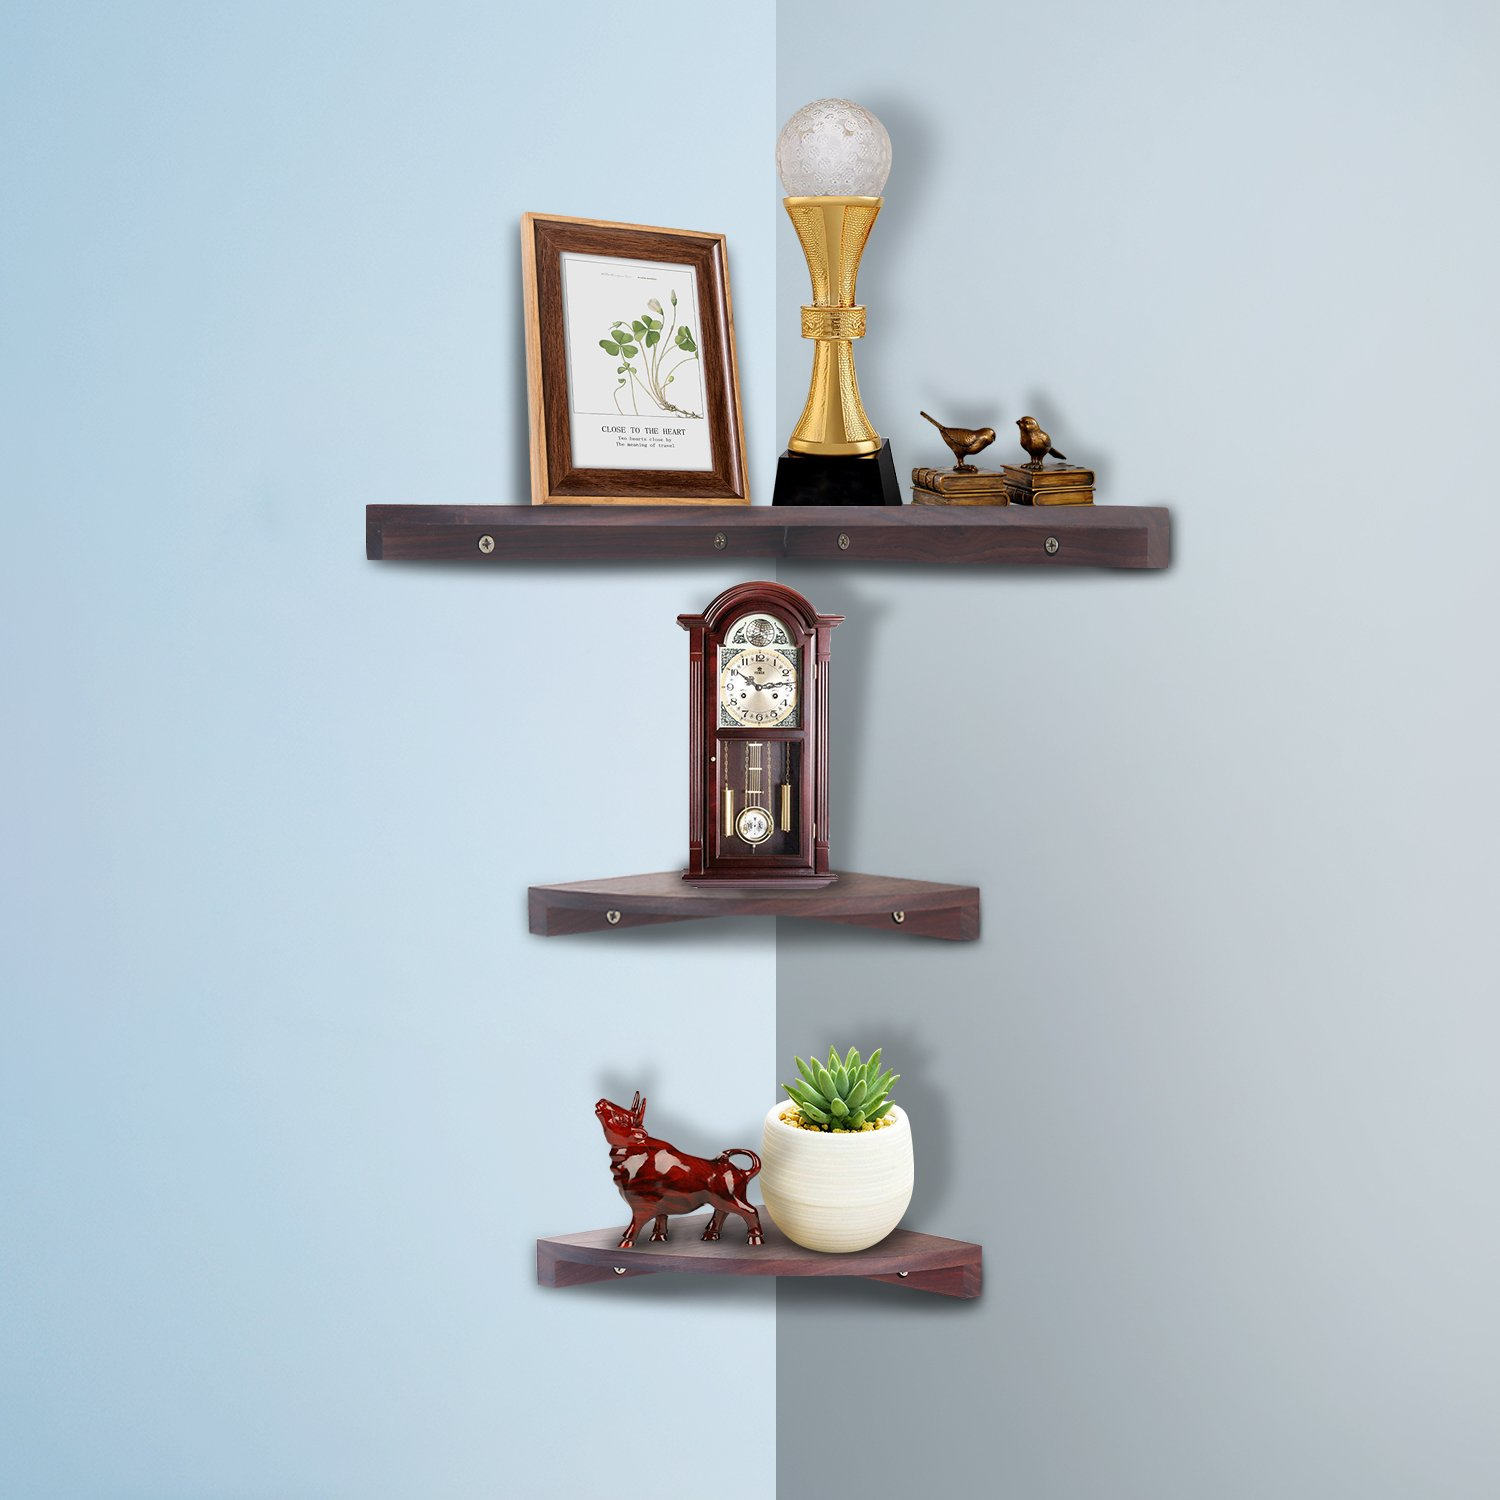 Yankario Walnut Corner Shelves Wall Mounted Set of 3, Floating Wall Shelves for Storage and Display in Living Room, Bedroom, Office and More